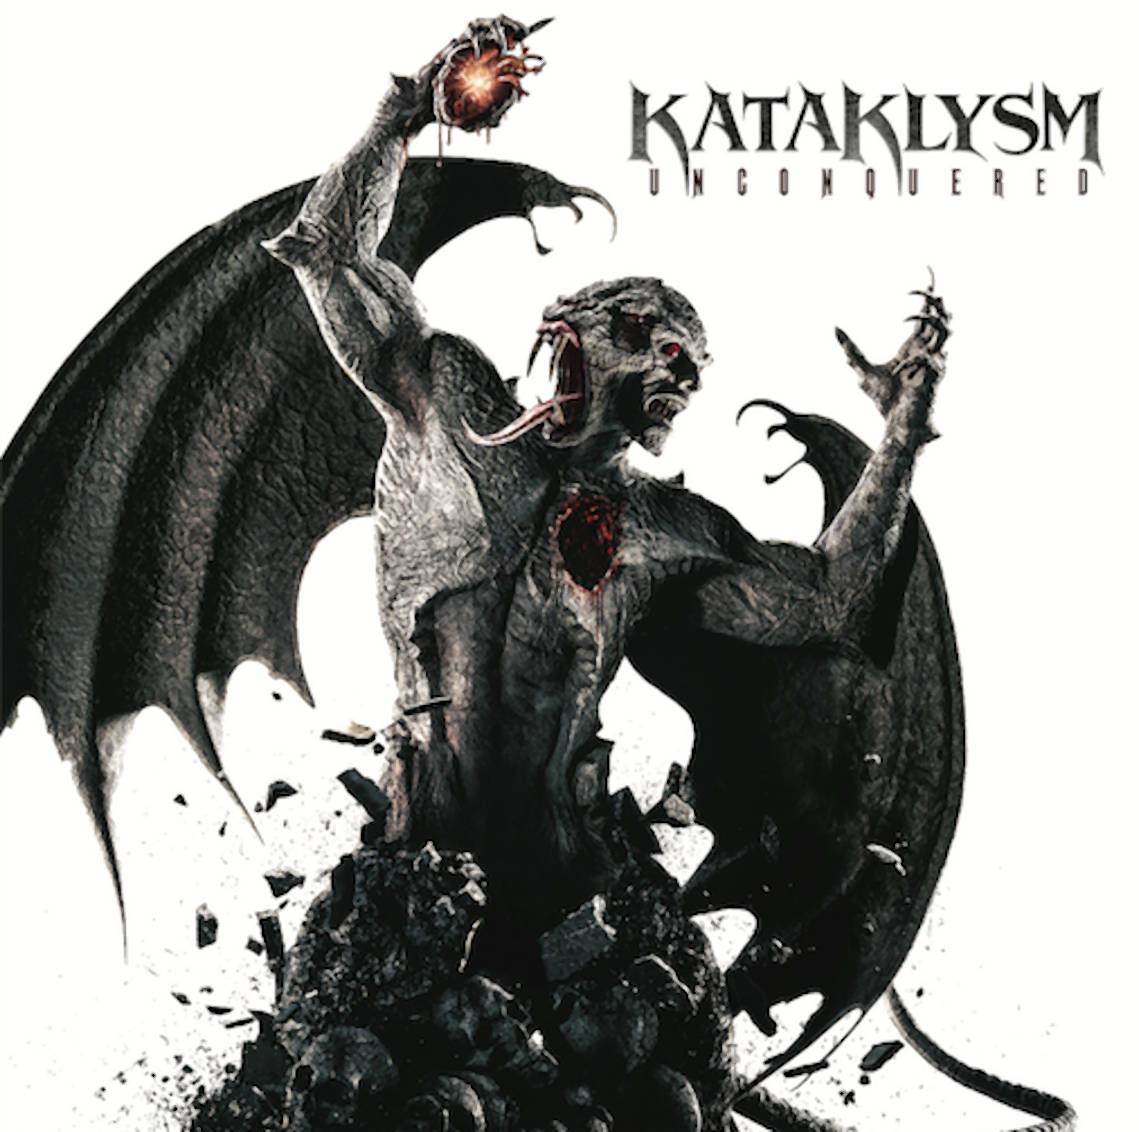 Kataklysm - Unconquered - Album Cover